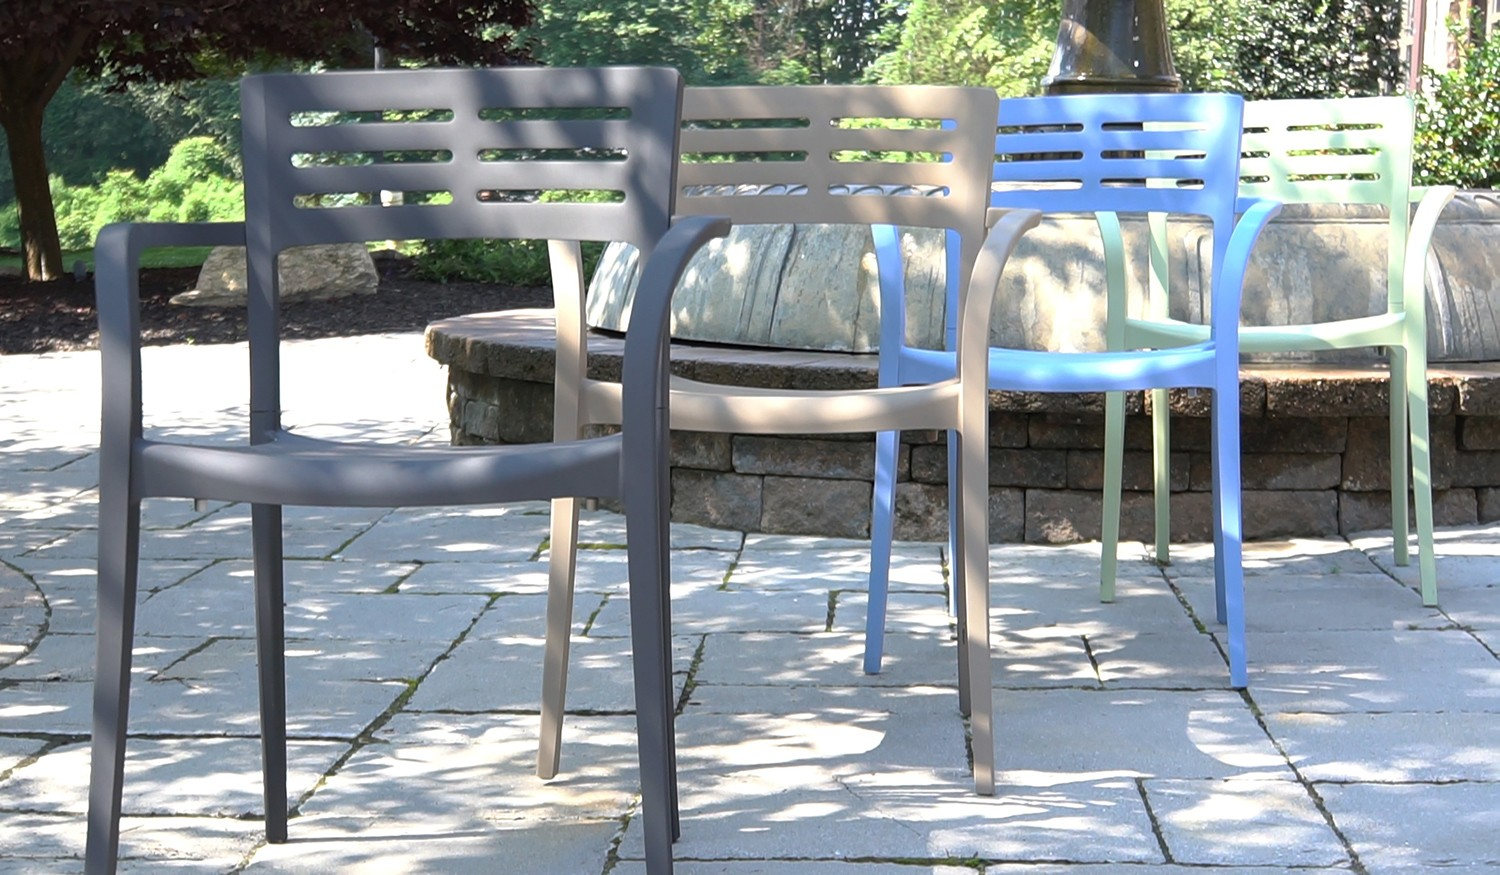 Grosfillex Exterior - Commercial Outdoor Furniture At Guaranteed Lowest Prices!